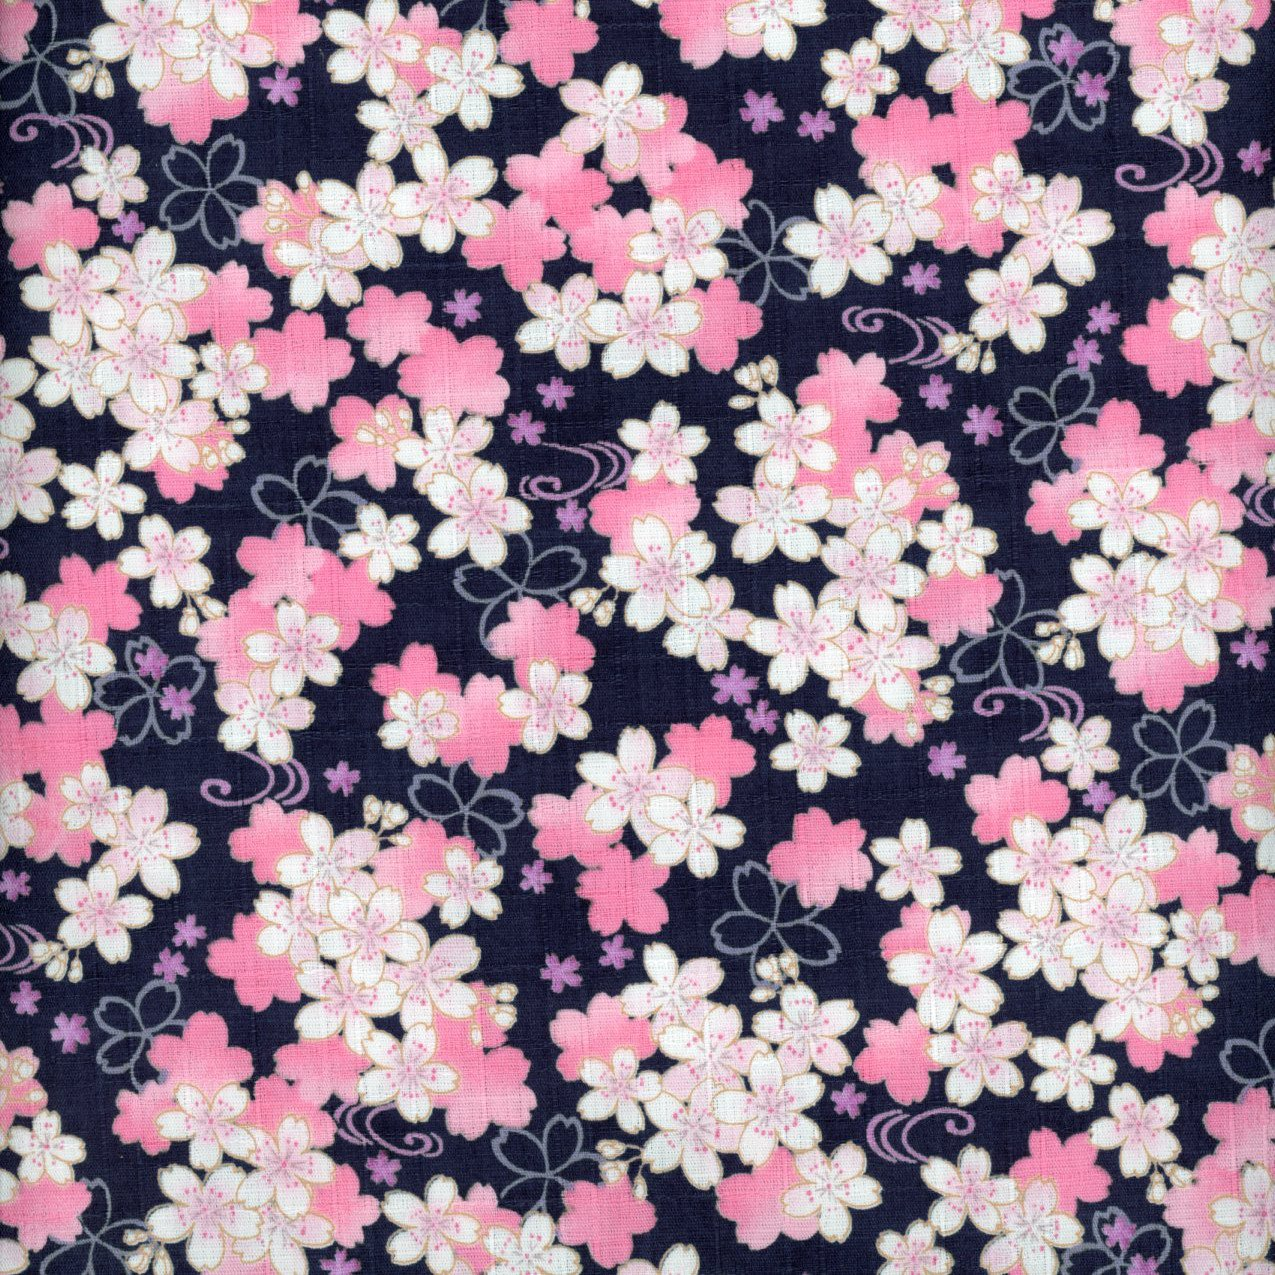 Sakura Cherry Blossom on Navy Dobby Print 301-110-1D